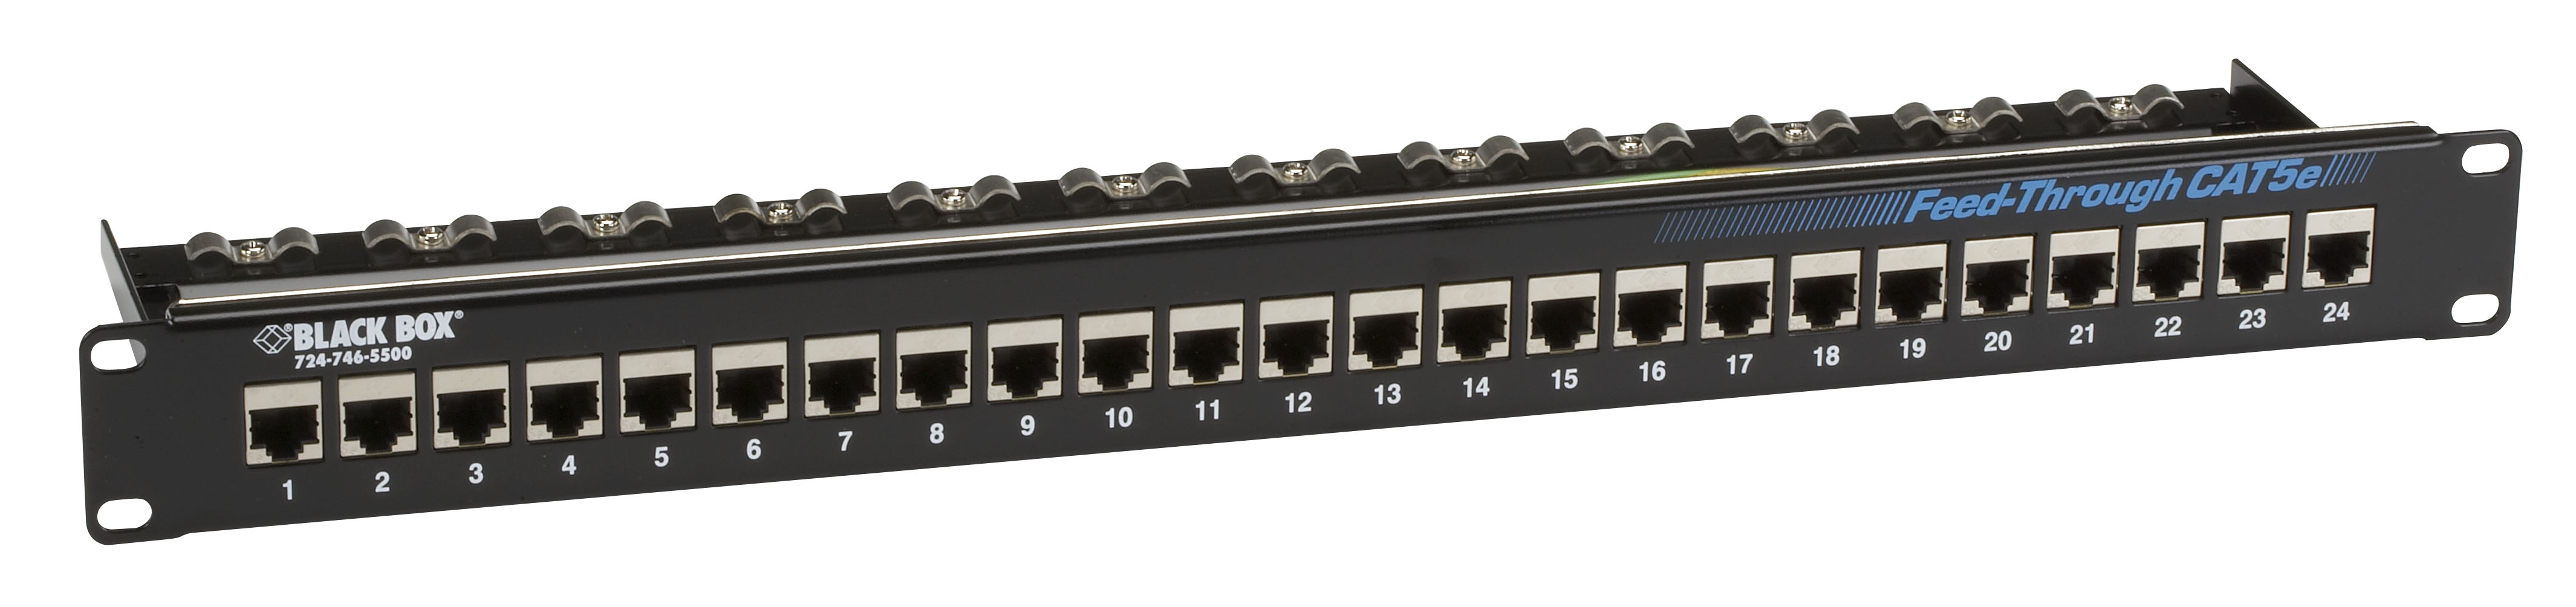 Cat5e Feedthrough Patchpanel 1u Unshielded 24port Black Box